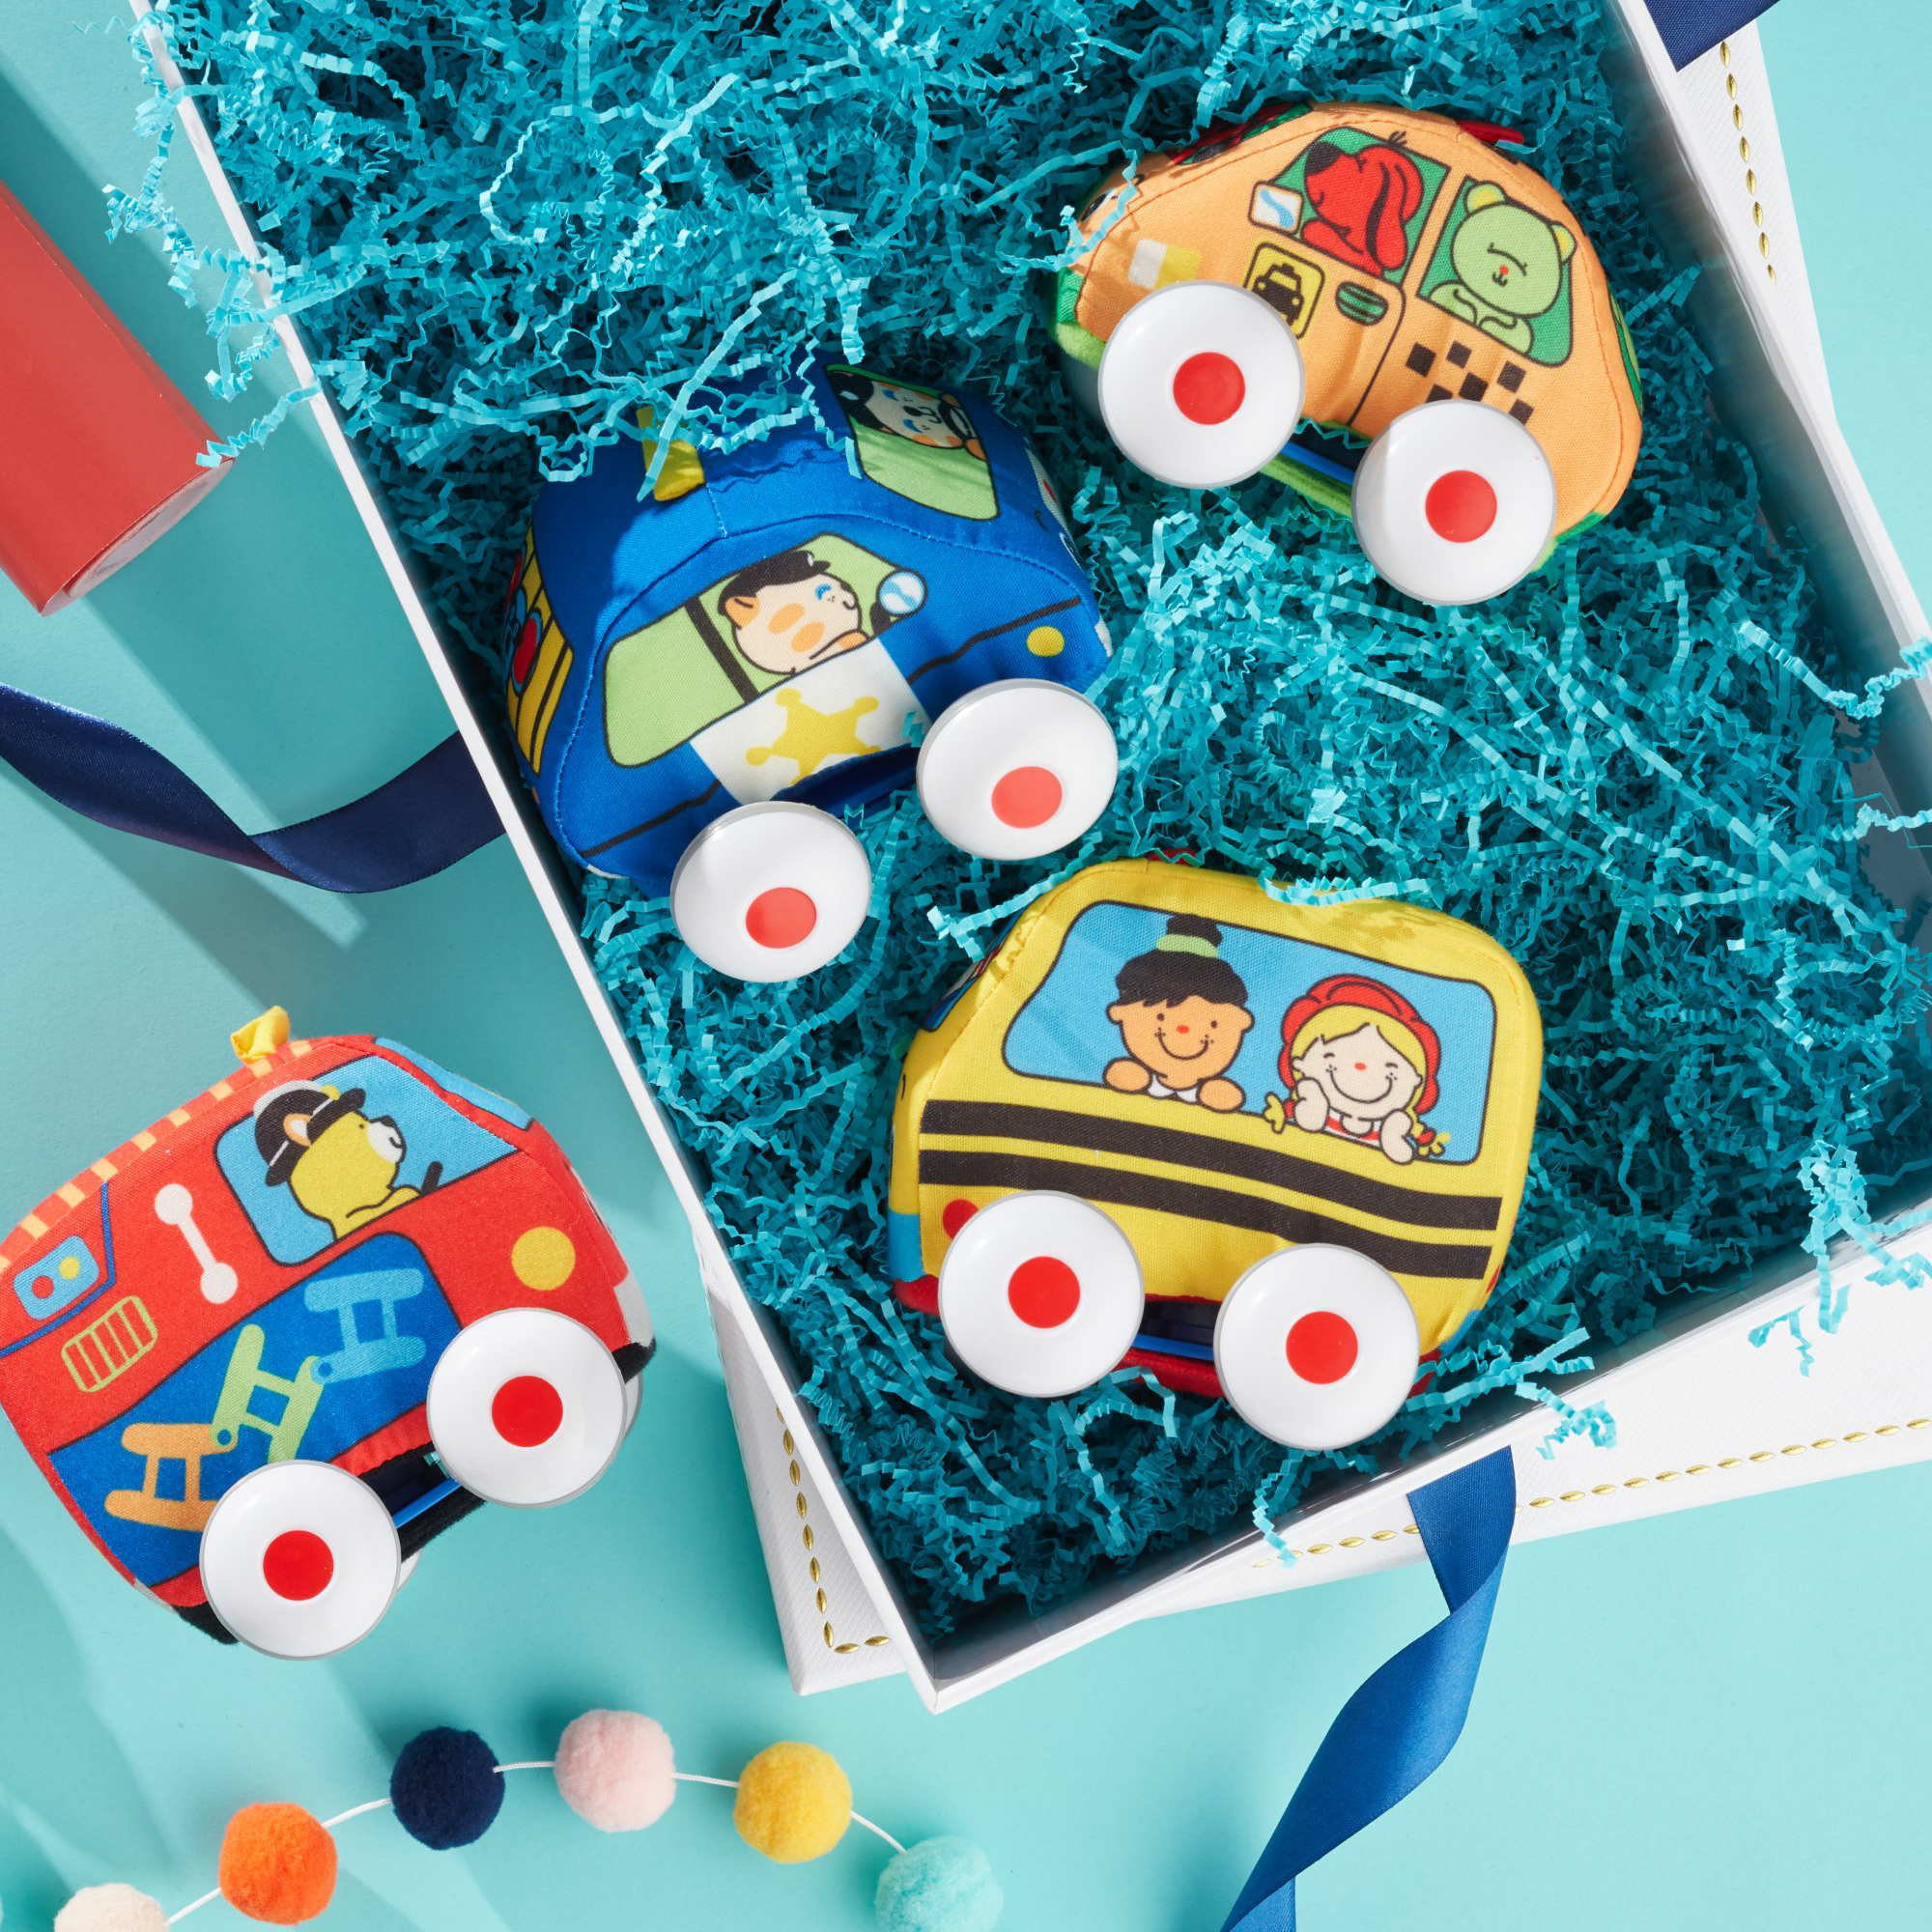 Holiday Gift Guide 2020: Best Gifts for Babies